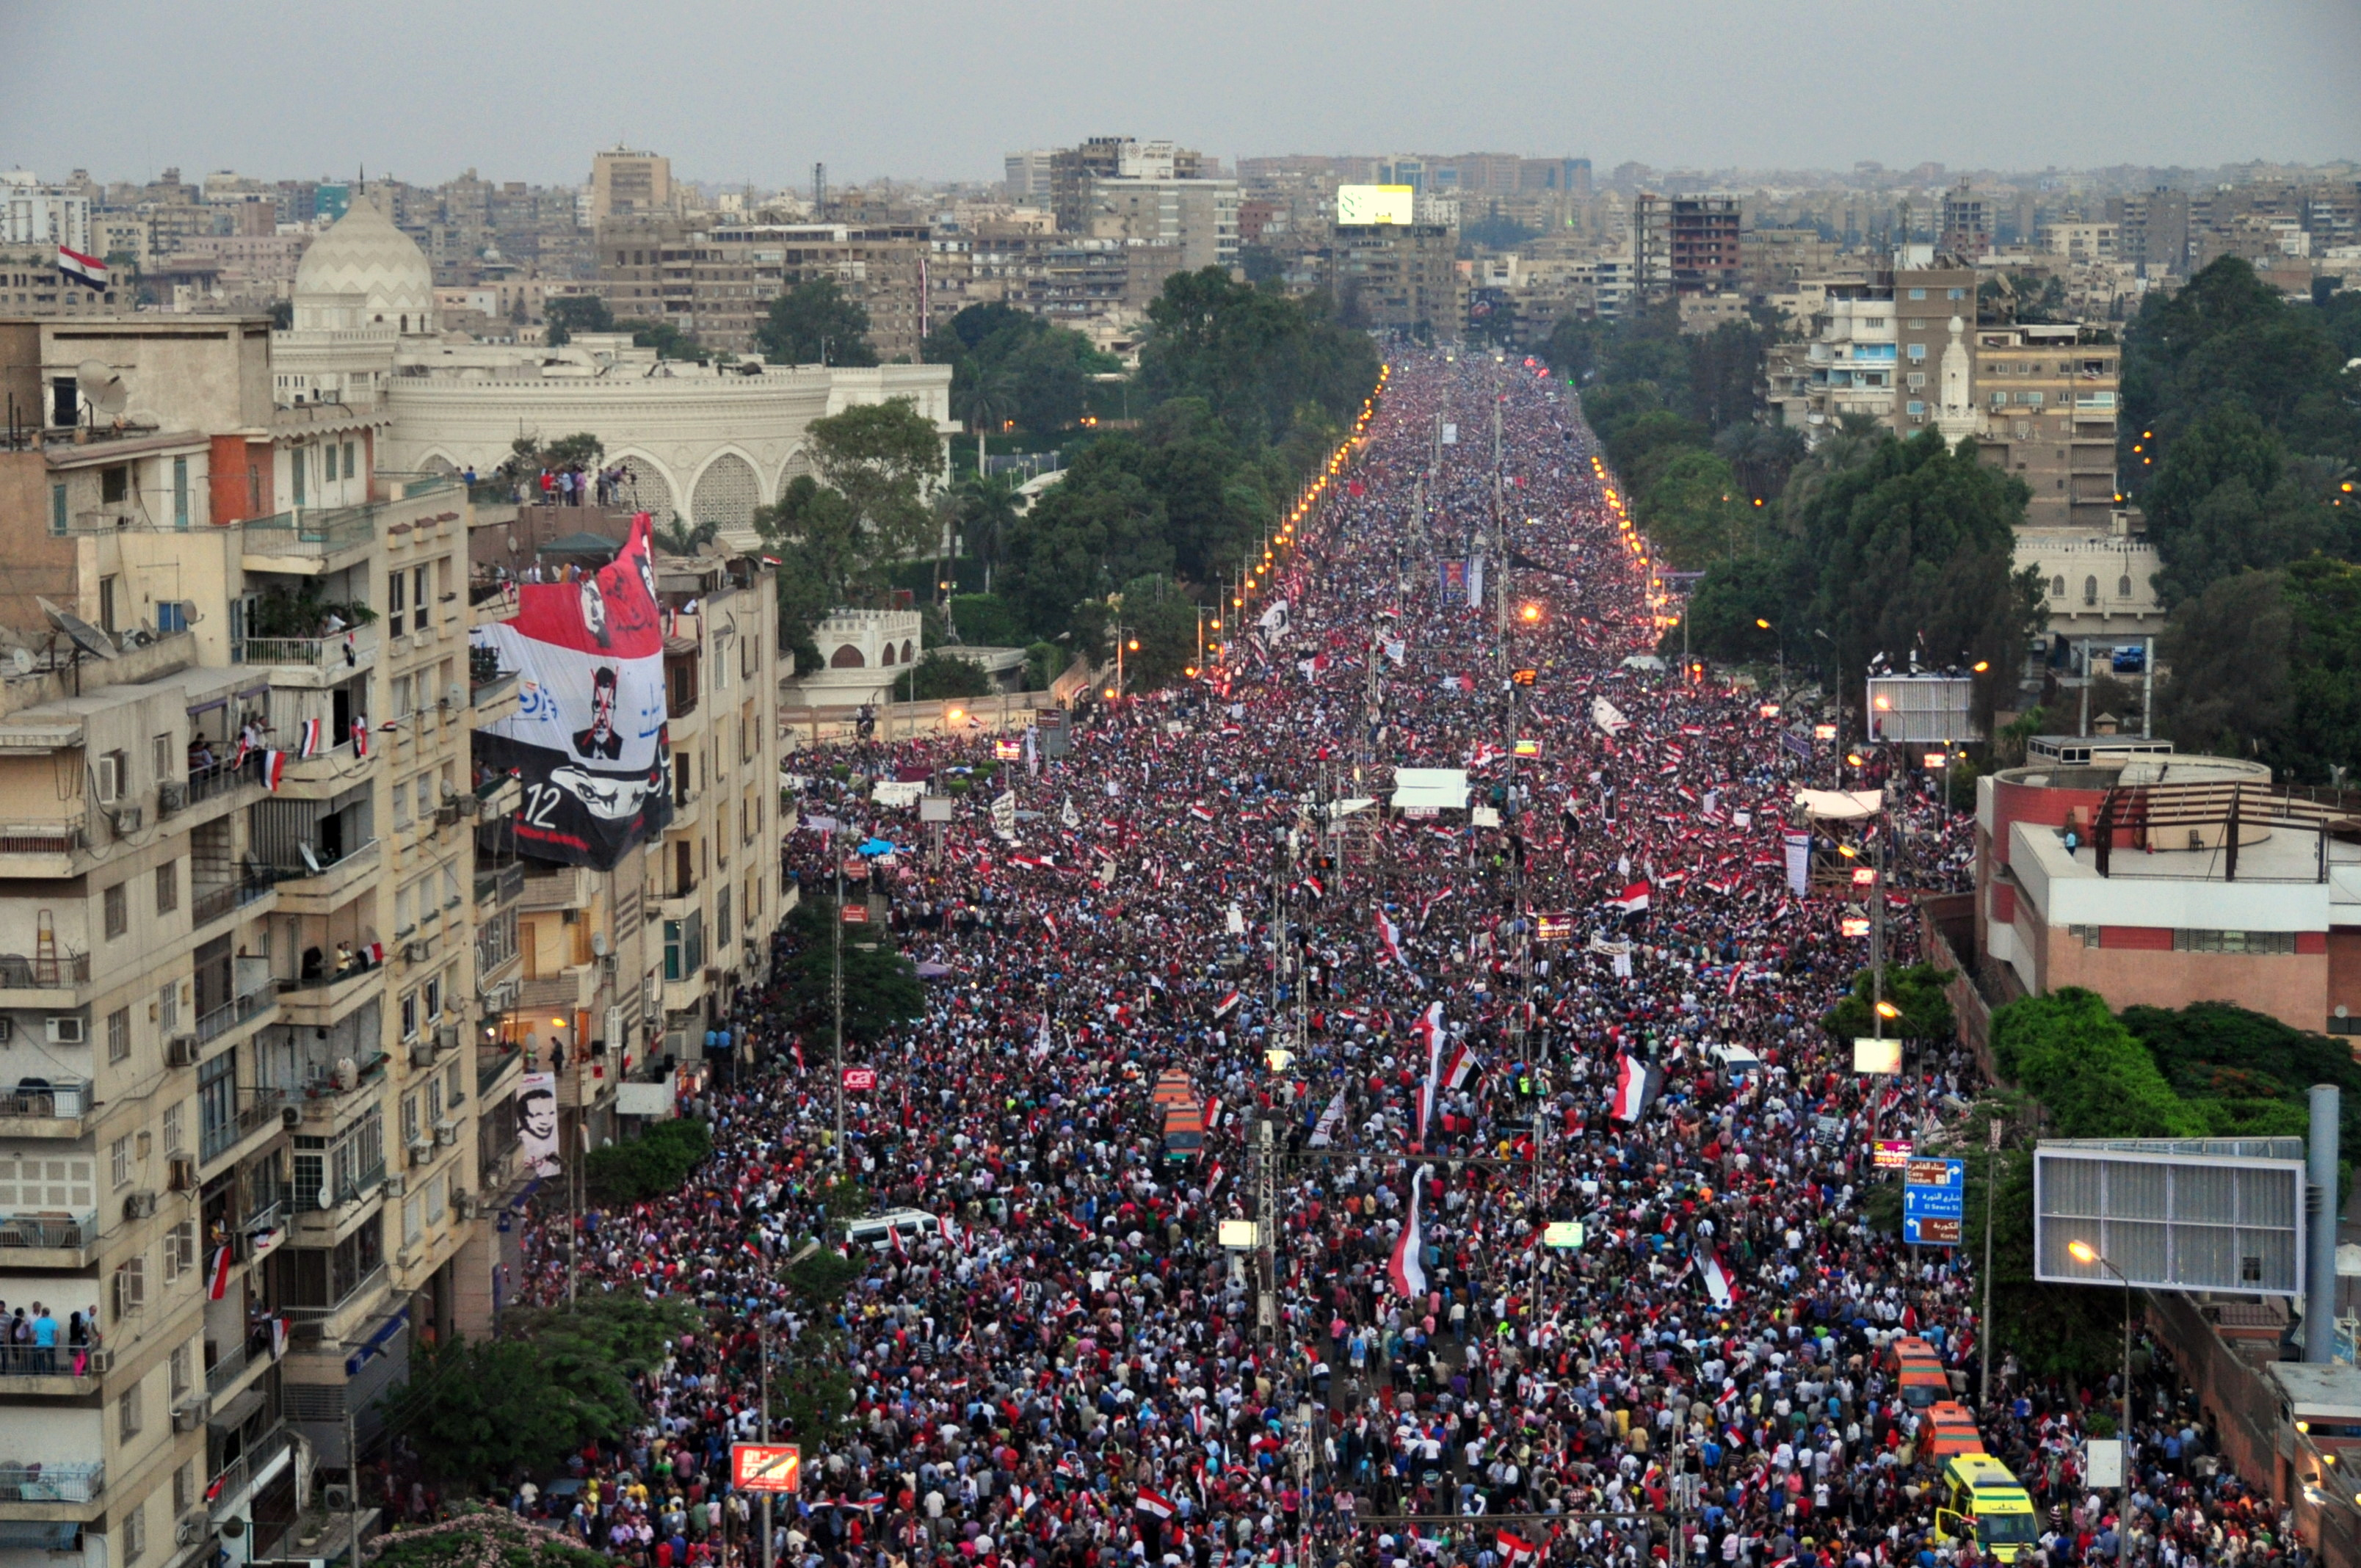 Egyptian demonstrators gather outside the presidential palace in Cairo on June 30, 2013. (Photo by Aaron T.Rose\DNE)